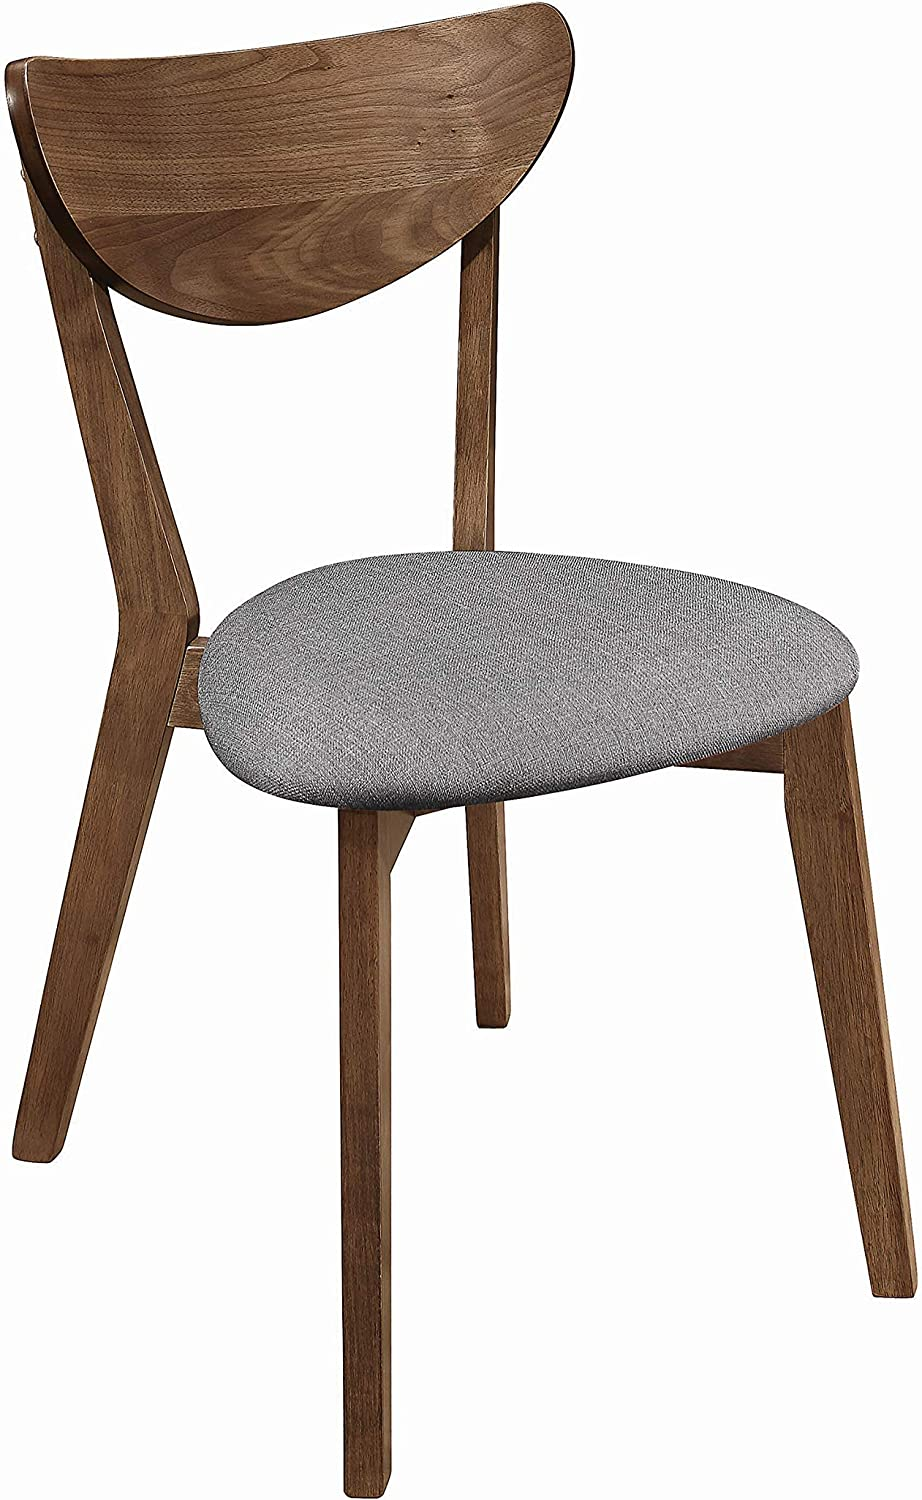 Coaster Home Furnishings Alfredo Upholstered Grey and Natural Walnut (Set of 2) Dining Chair